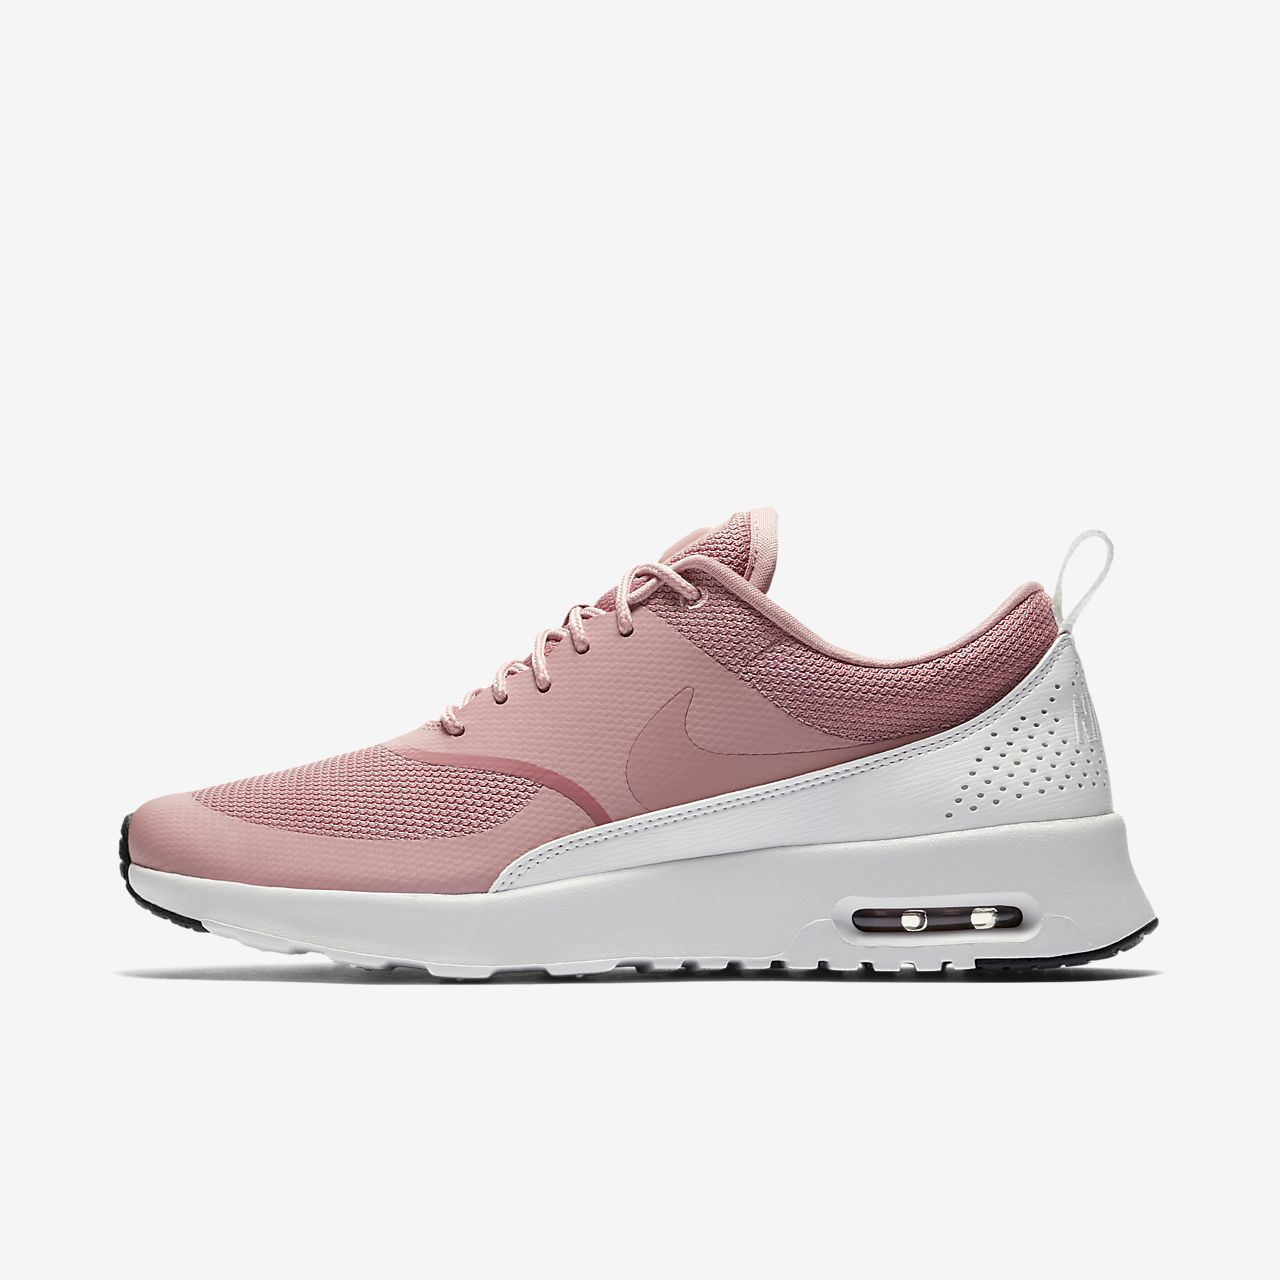 Nike Air Max Thea Womens Shoe